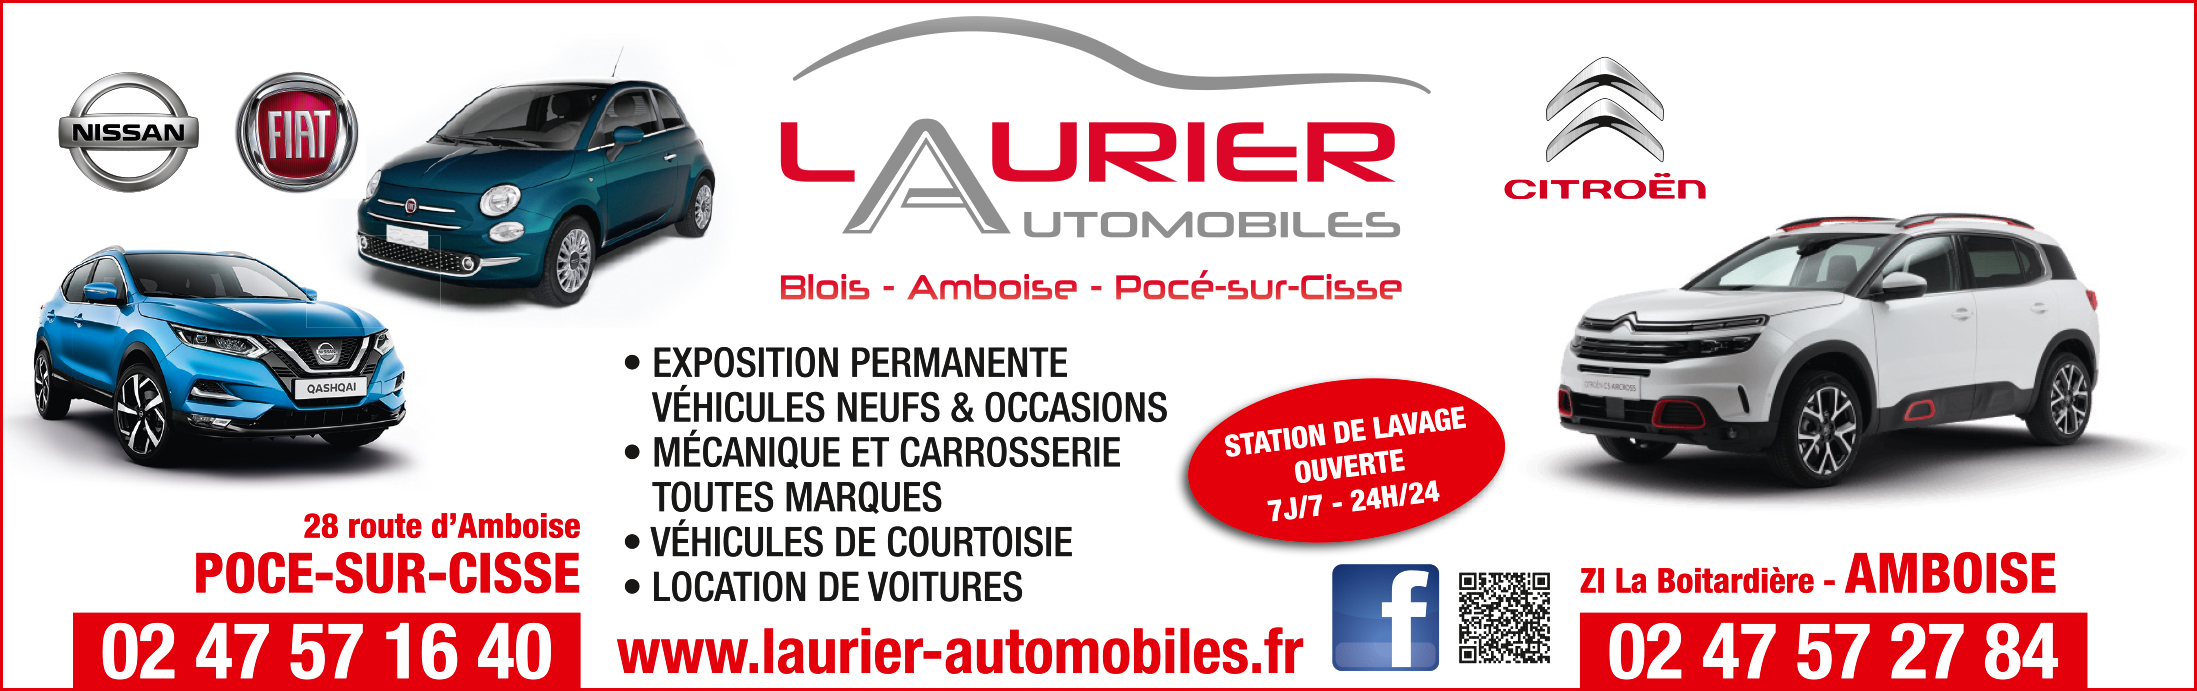 Laurier automobile